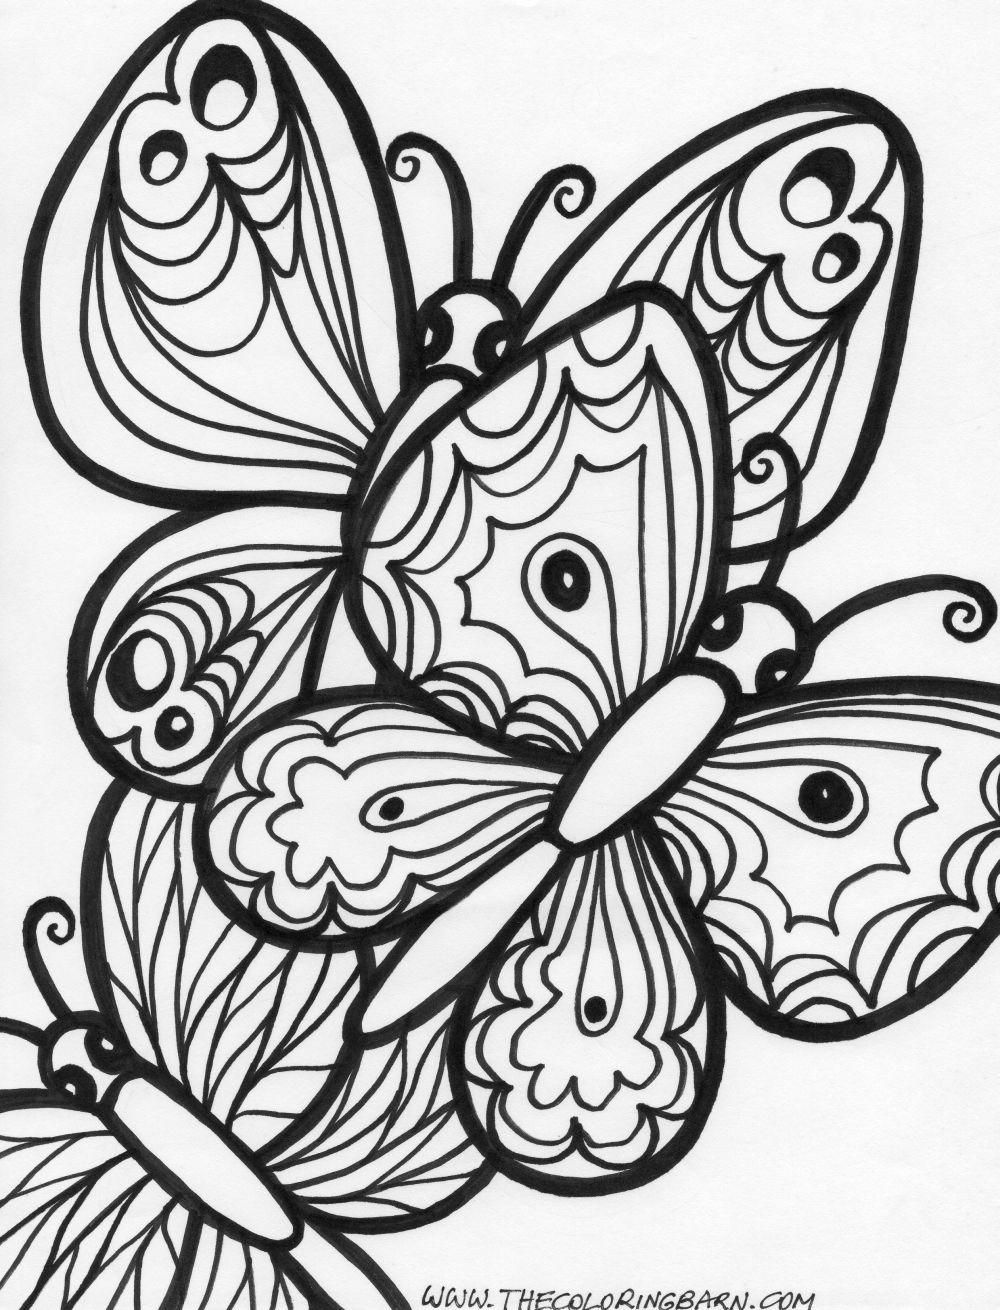 Printable Coloring Pages For Adults With Dementia Coloring Page